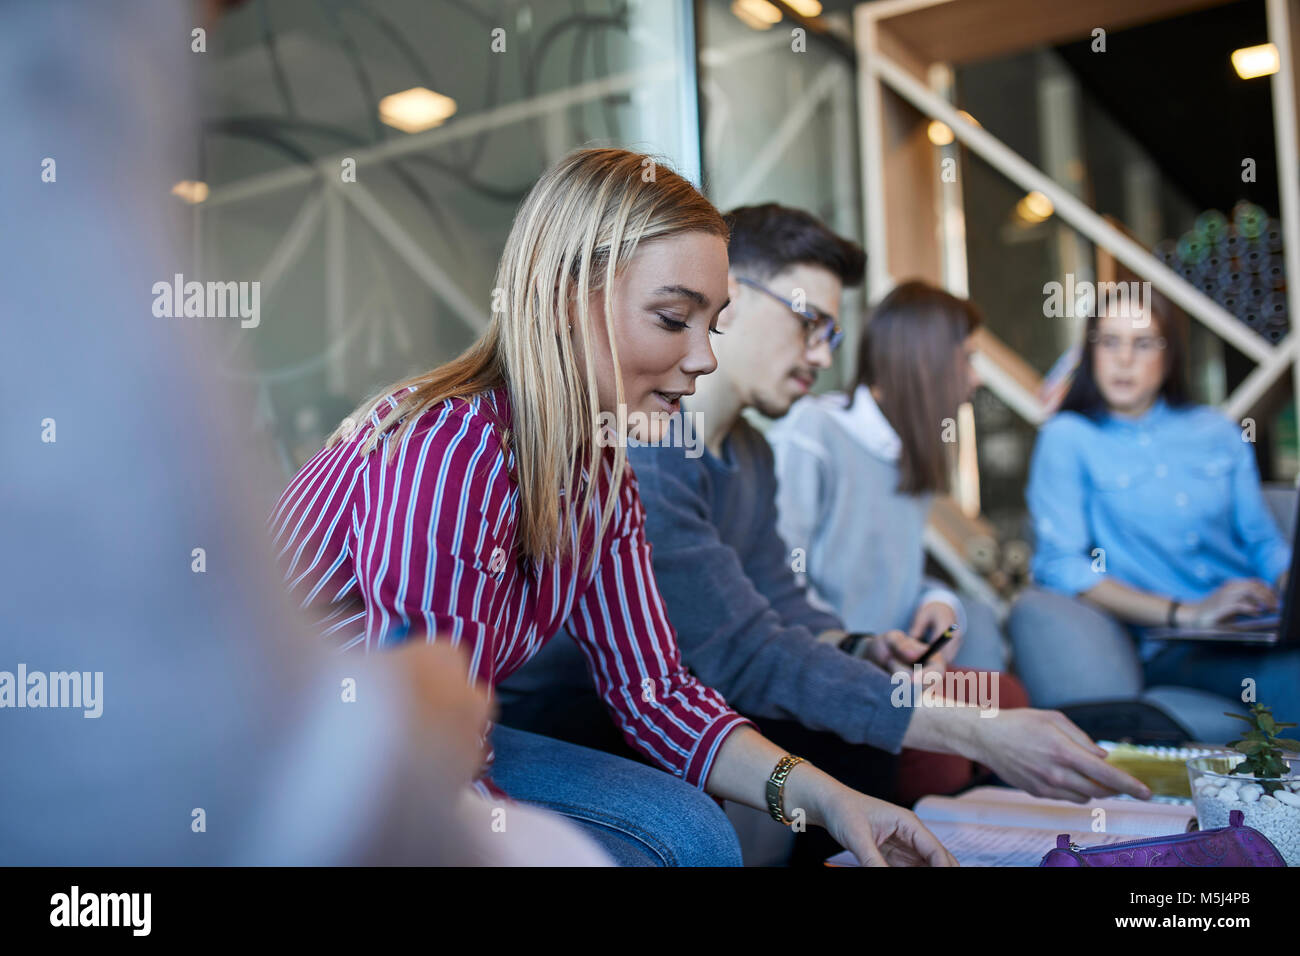 Group of friends sitting together in a cafe discussing documents - Stock Image